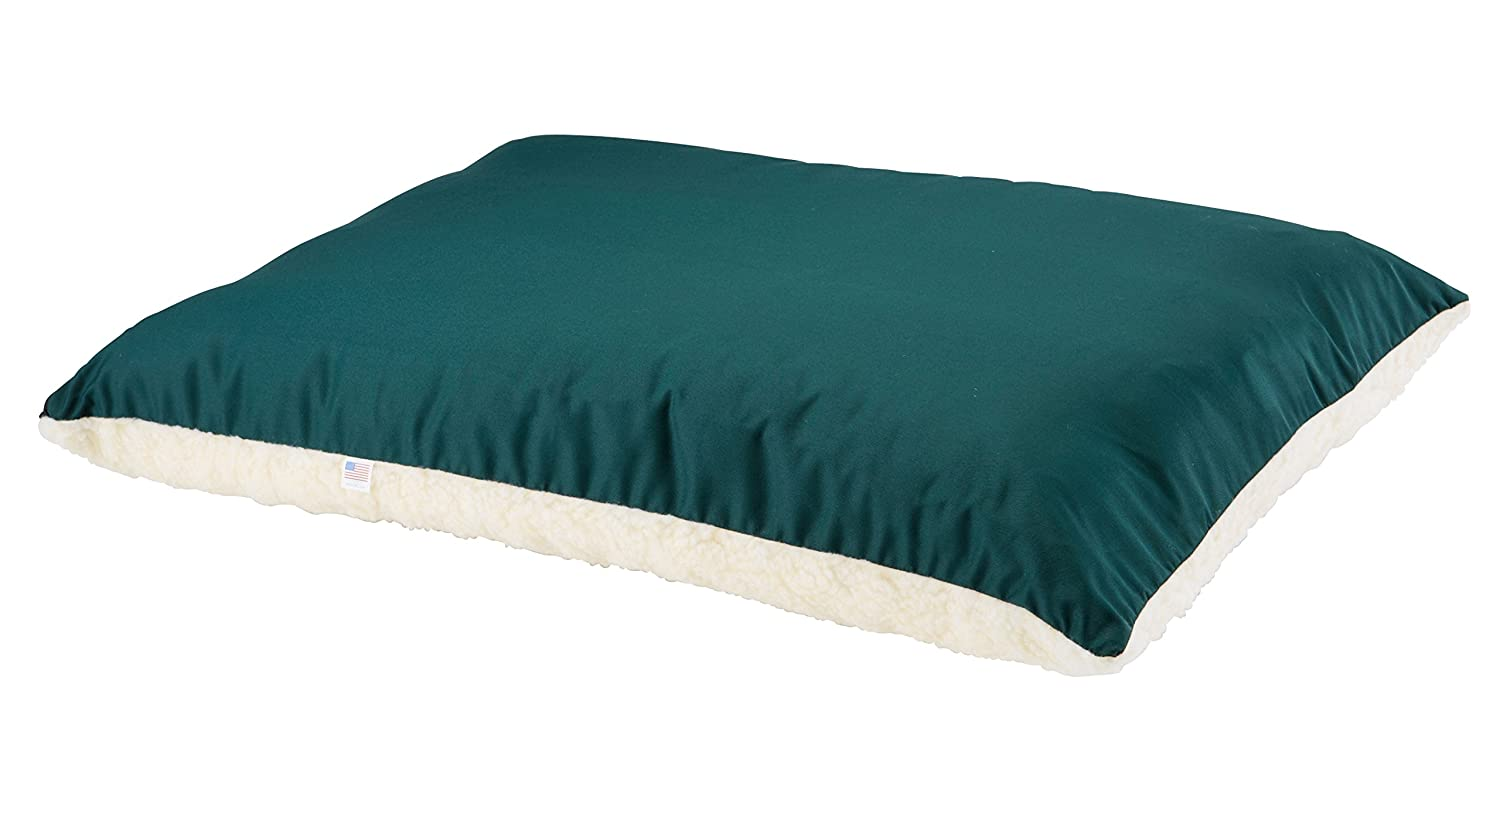 Great State Pet Dual Comfort Bed for Pets, 26 by 34-Inch, Green